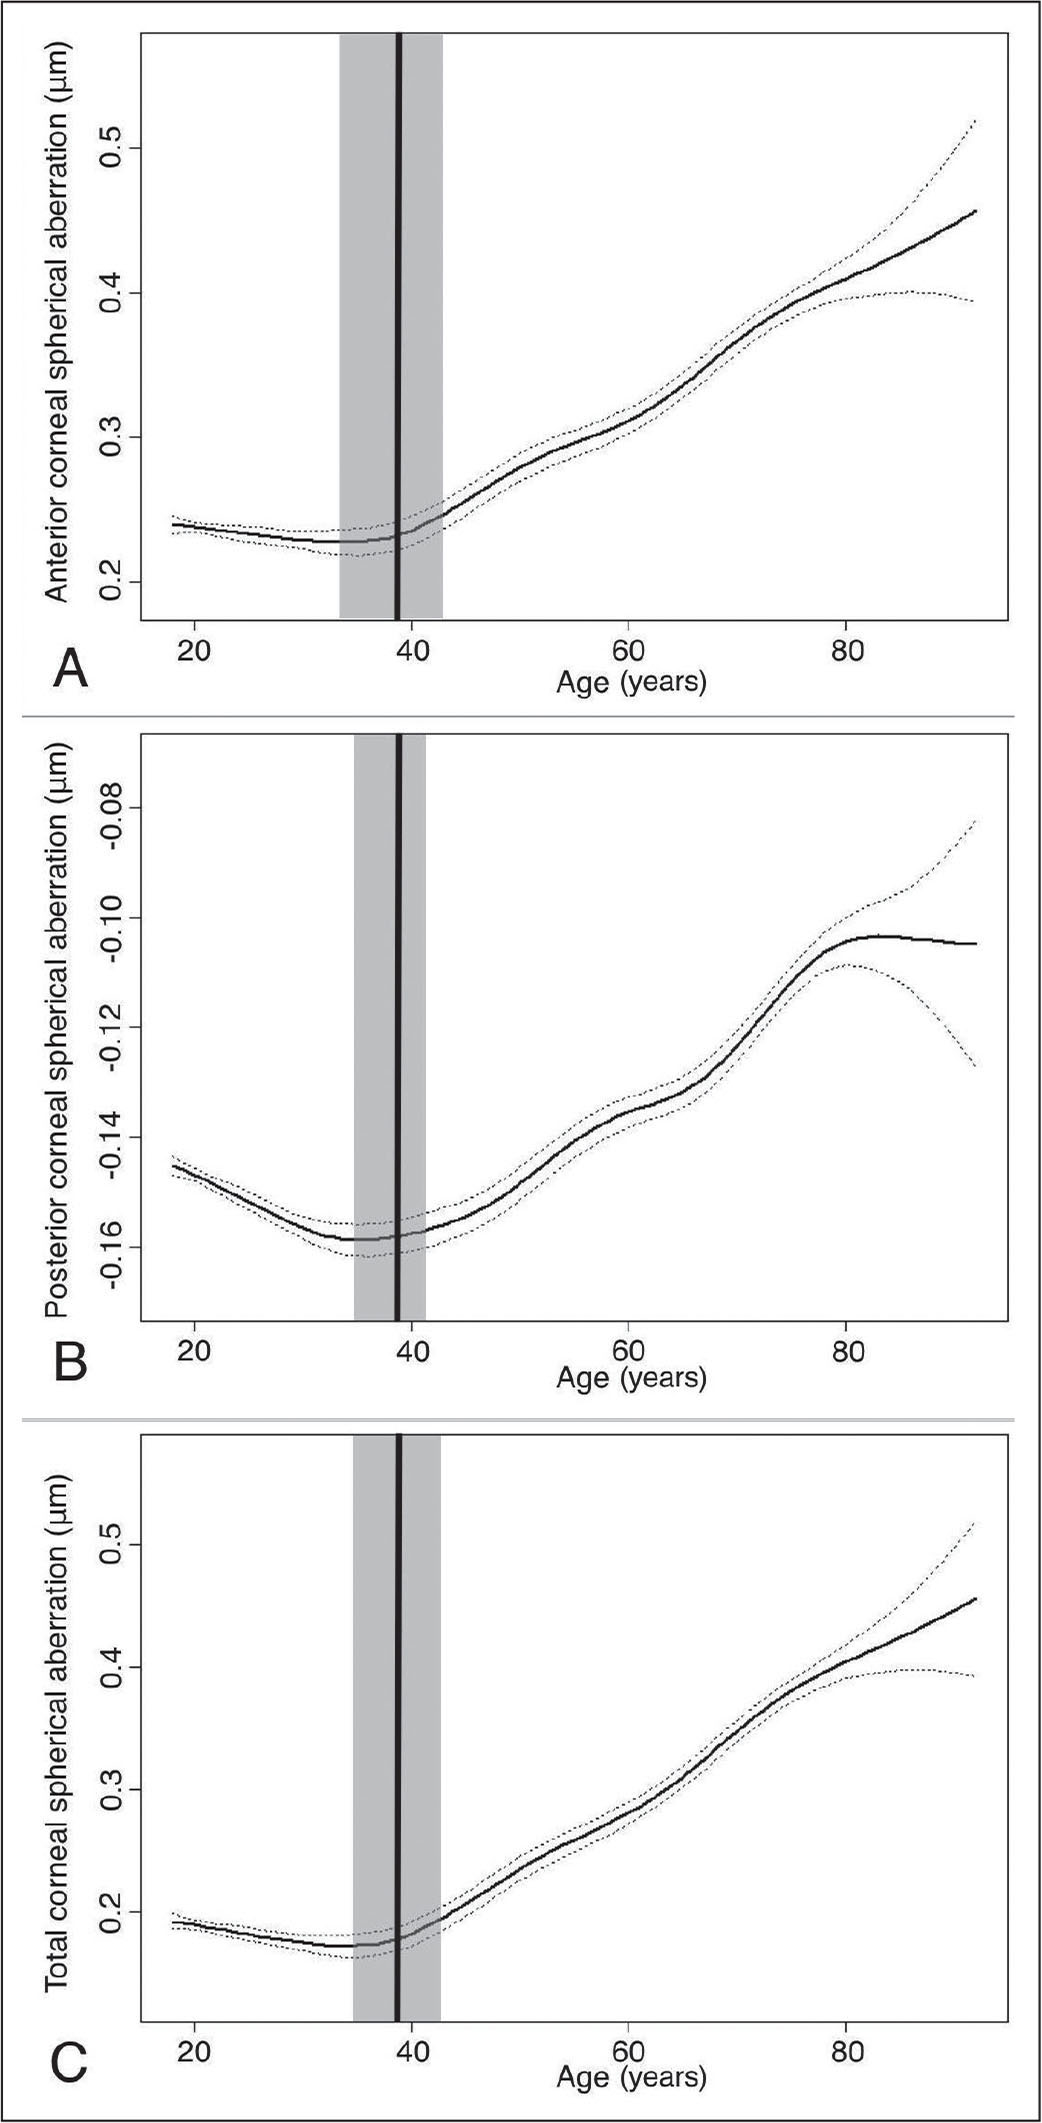 Smoothed fitting curves of (A) anterior corneal spherical aberration (ASA), (B) posterior corneal spherical aberration (PSA), and (C) total corneal spherical aberration (TSA) as a function of age. The turning points of age were found at (A) 39 years, 95% confidence interval (CI): 35 to 42; (B) 39 years, 95% CI: 36 to 41; and (C) 39 years, 95% CI: 36 to 42. The middle lines represent the smoothed fitting curve and the upper and lower dotted lines represent the 95% CI of the smoothed fitting curve. The vertical lines represent the turning points of age and the gray area signifies the 95% CI of the turning points.